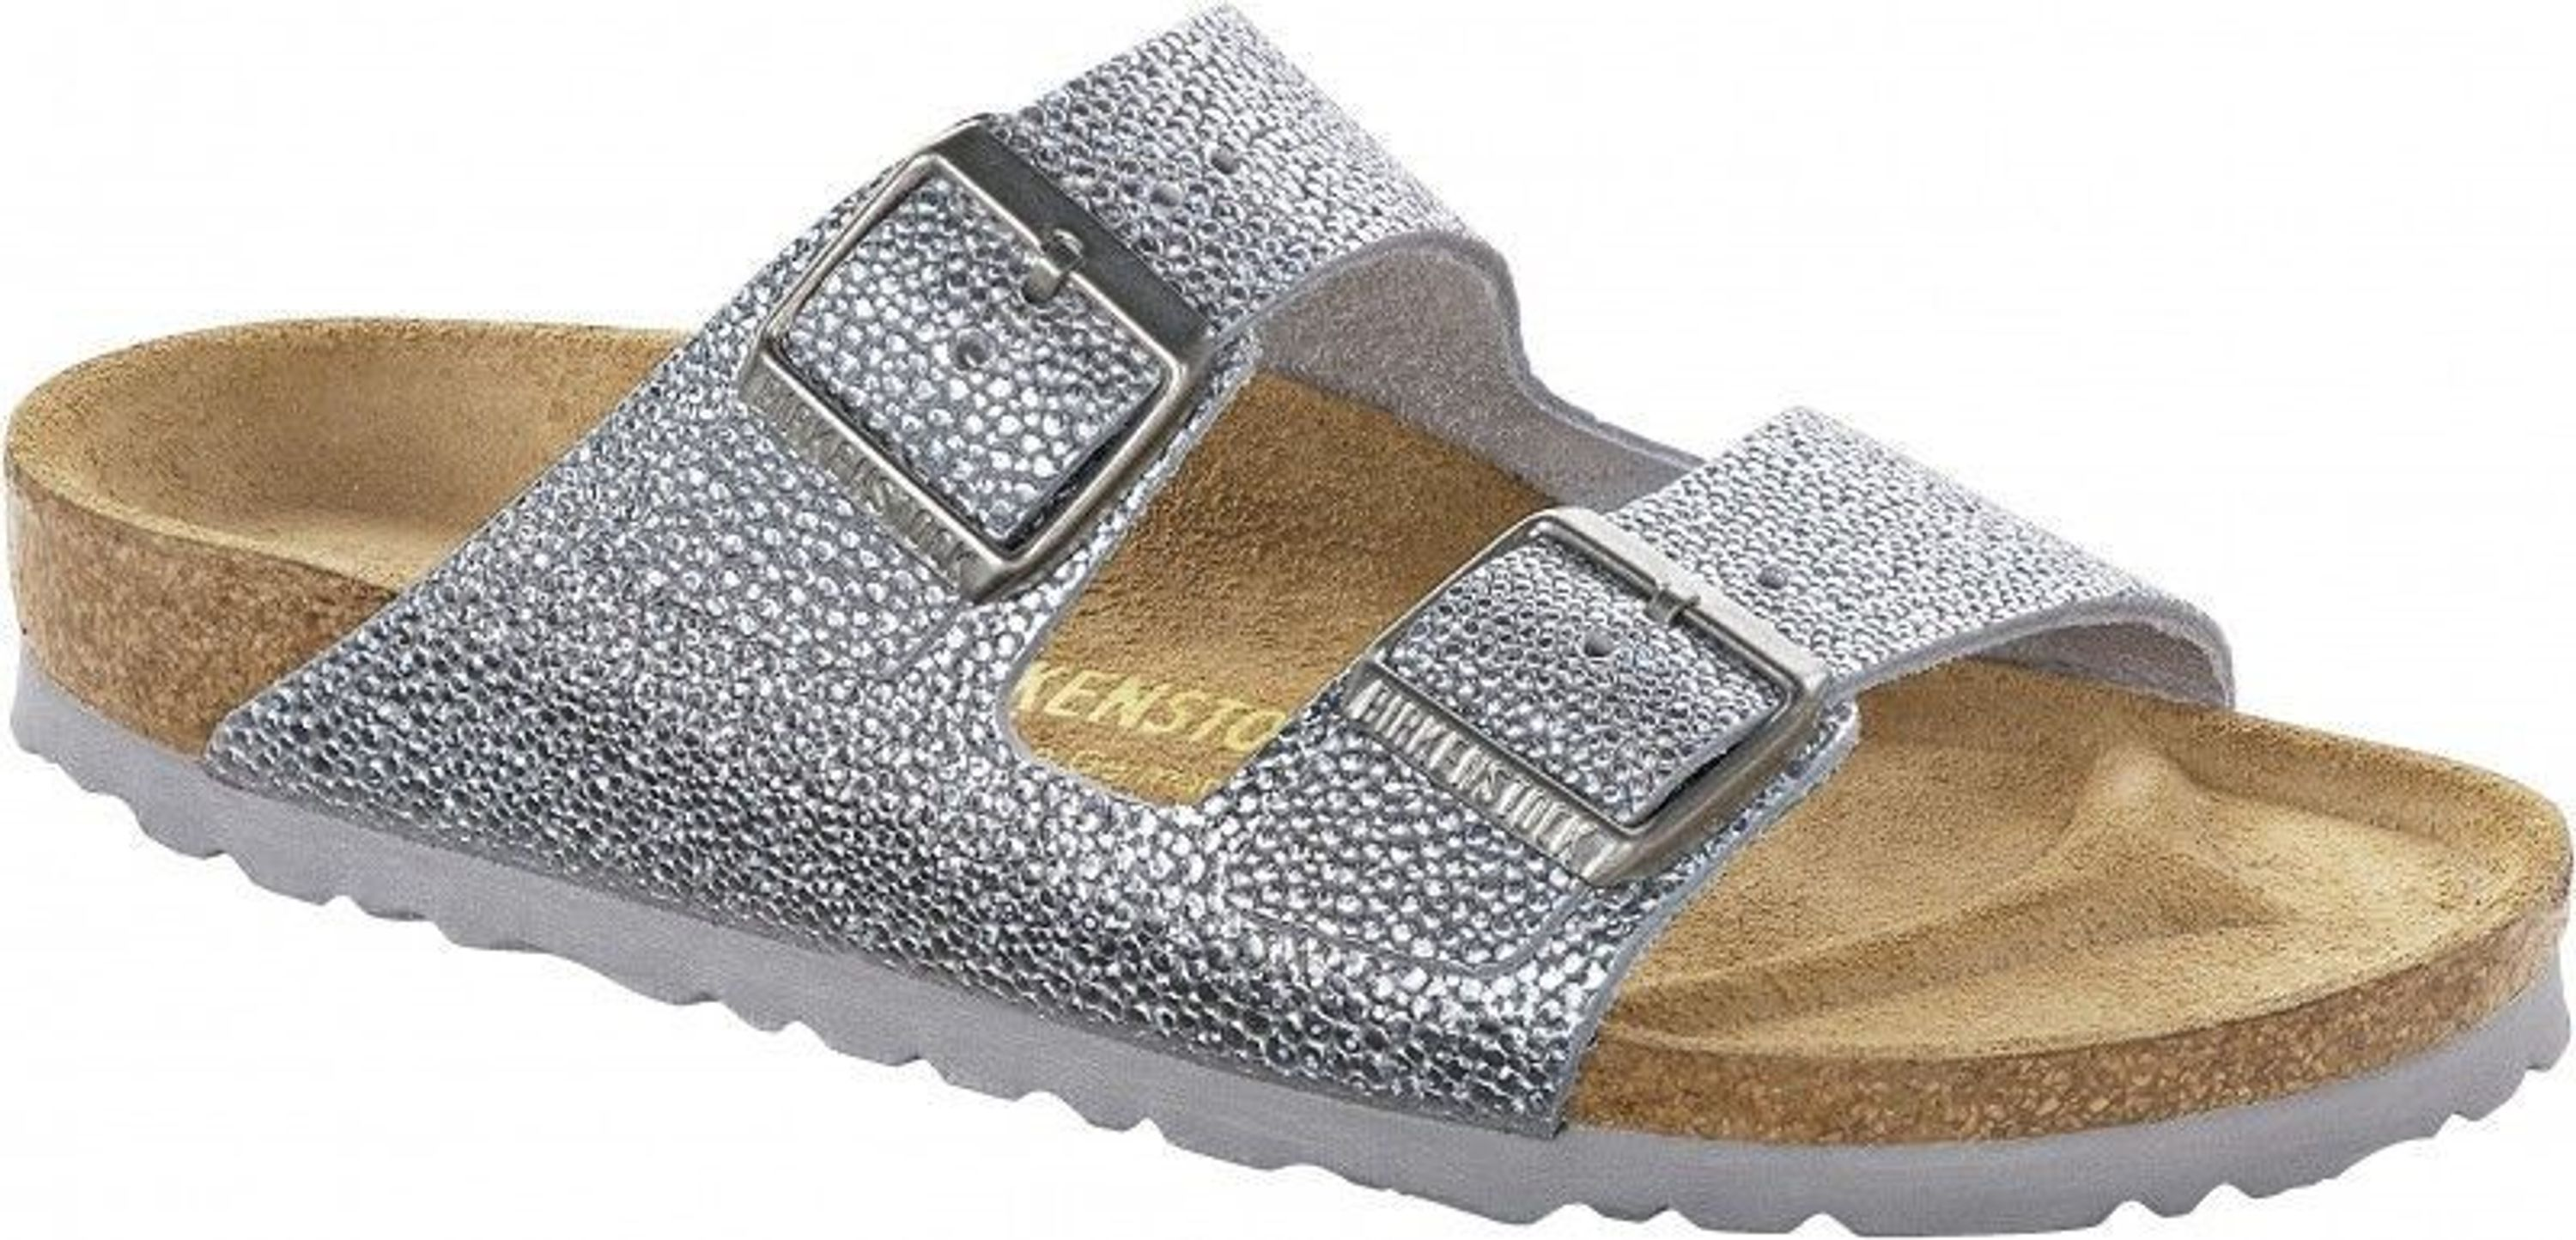 birkenstock pantolette arizona pebbles metallic silver gr. Black Bedroom Furniture Sets. Home Design Ideas